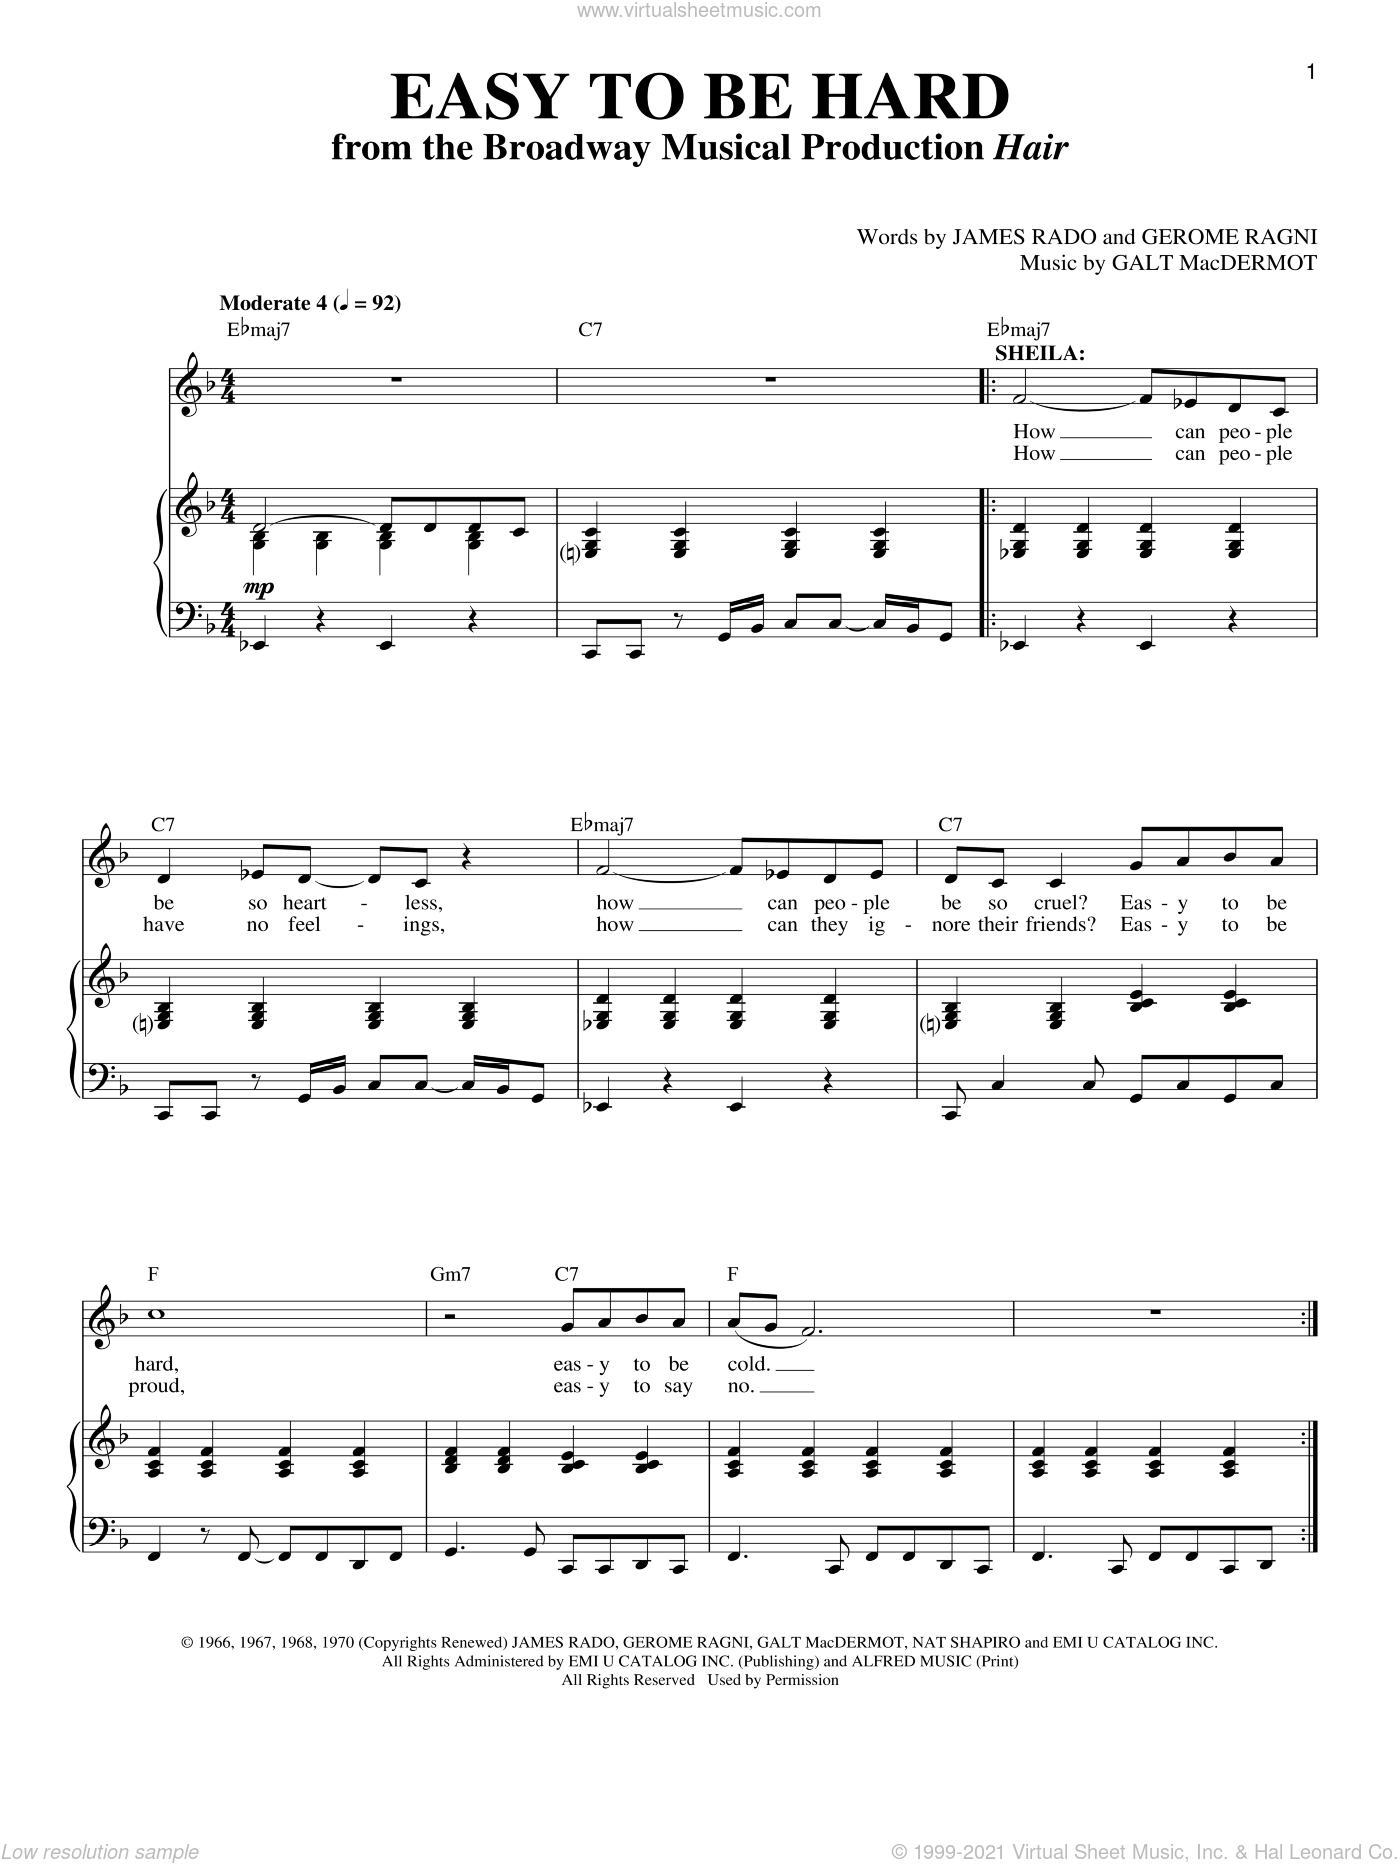 Easy To Be Hard sheet music for voice and piano by Galt MacDermot, Gerome Ragni and James Rado, intermediate